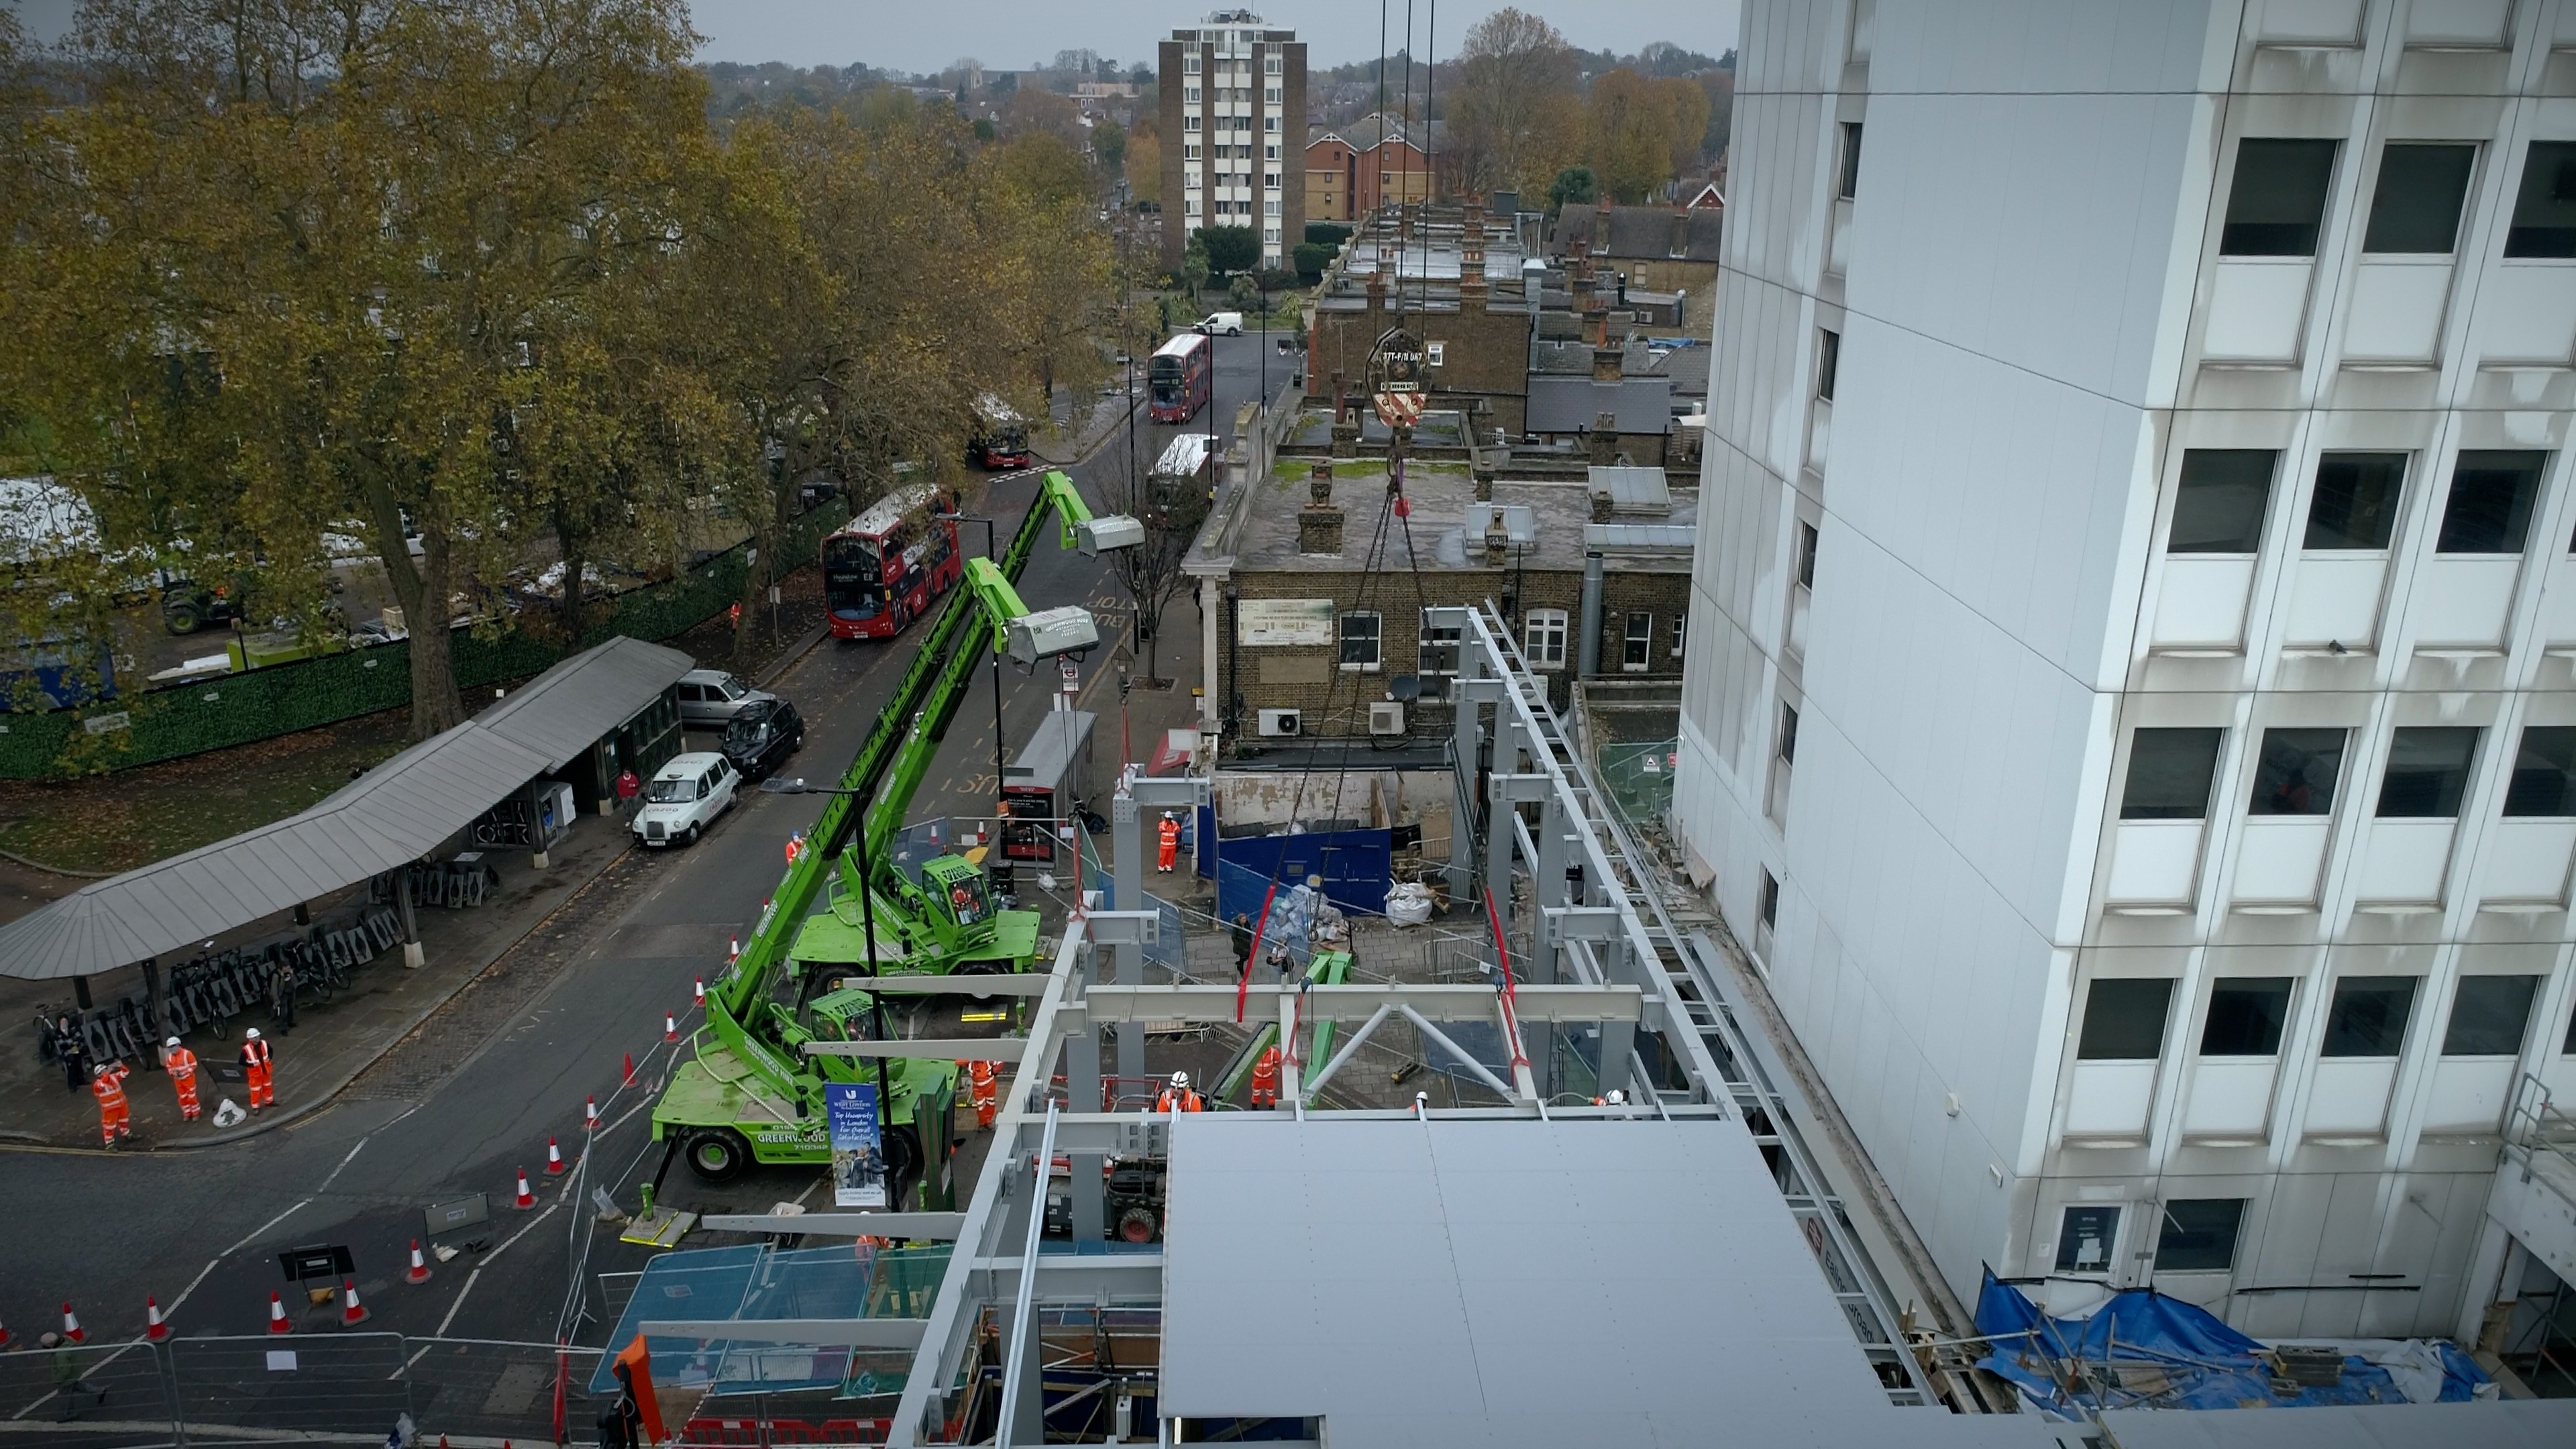 Milestone reached at Ealing Broadway Phase One image